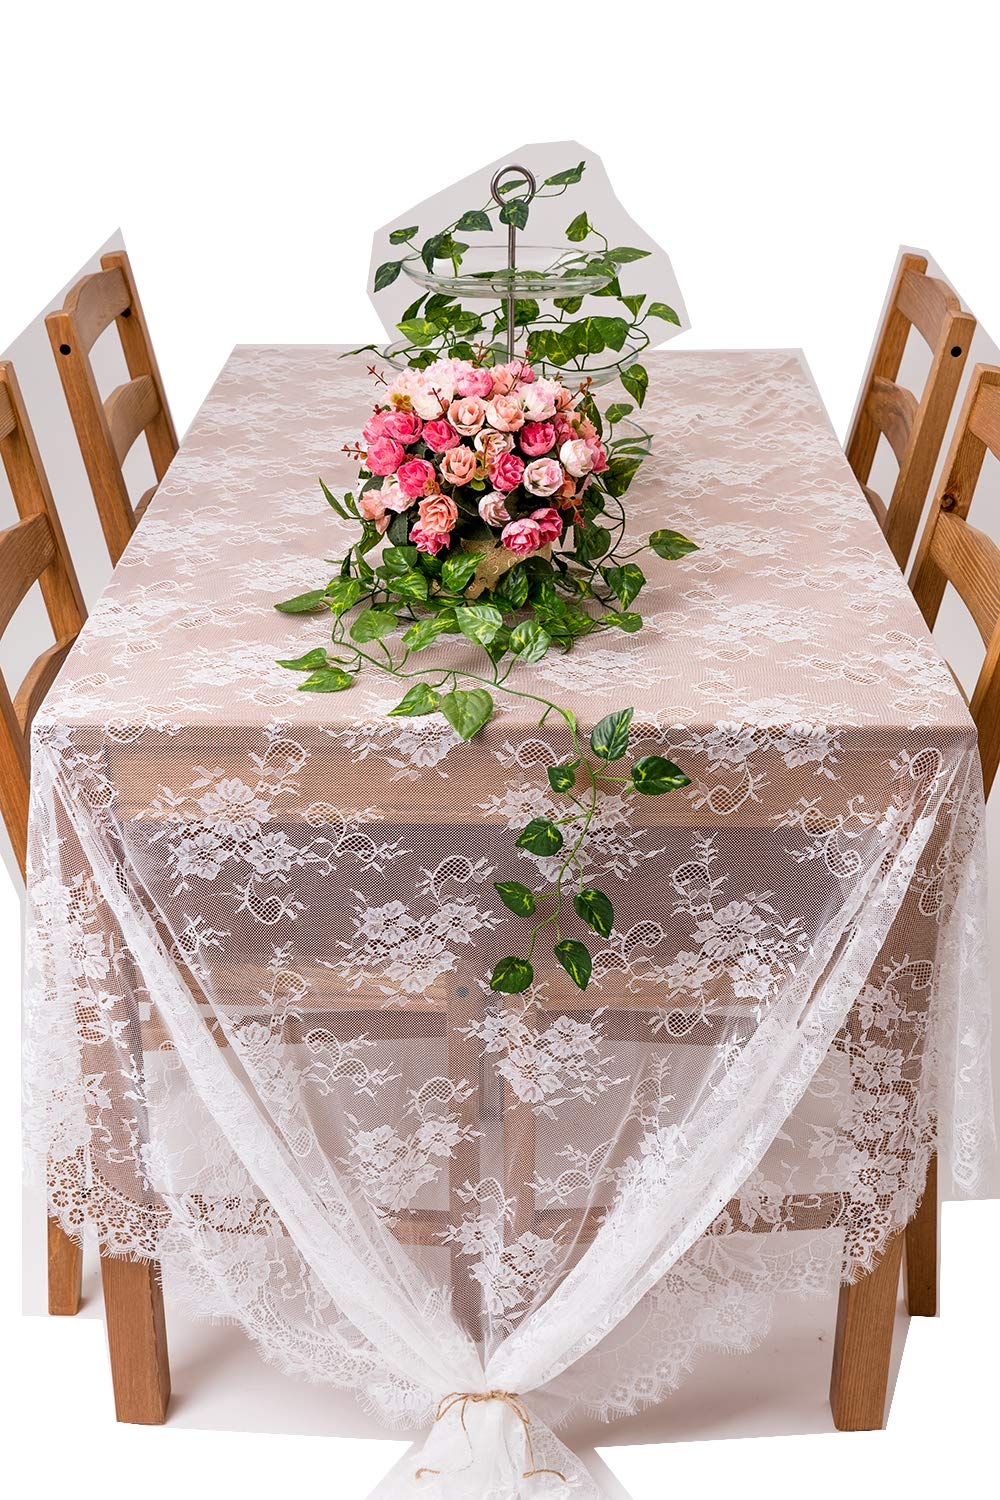 Crisky 60''x120'' Classic White Lace Tablecloths for Weddings, Rose Vintage Embroidered Lace Table runner Overlay for Baby & Bridal Shower Décor, Elagent Chic Spring Sunmmer Outdoor Tea Party Tablecover